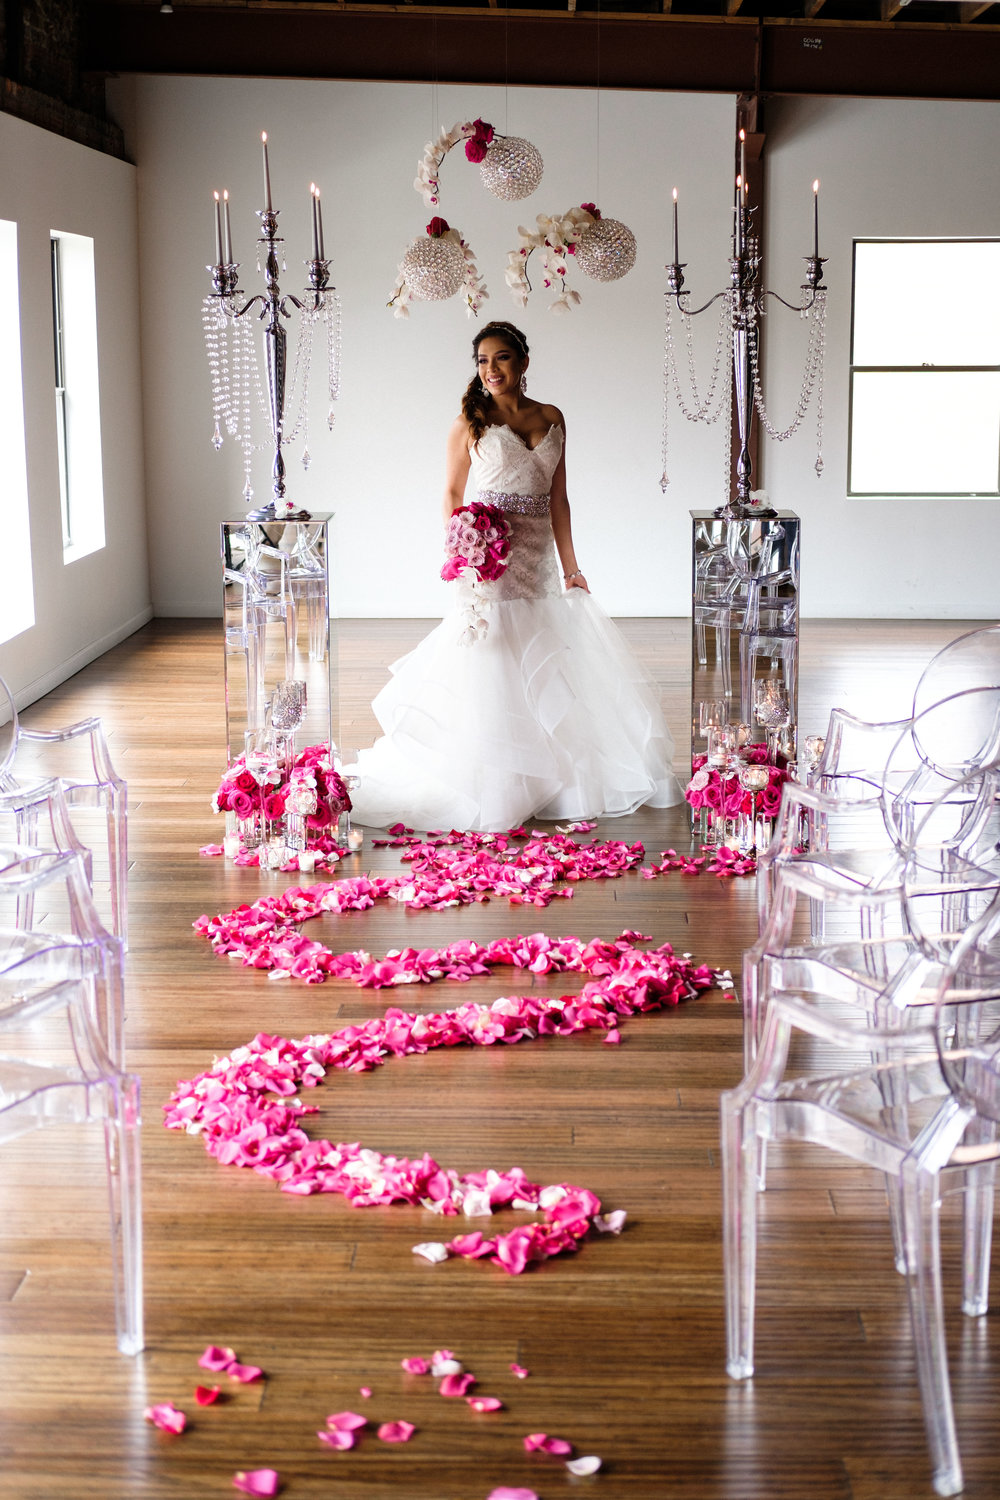 SHE Floral_Style & Story Creative_172.JPG